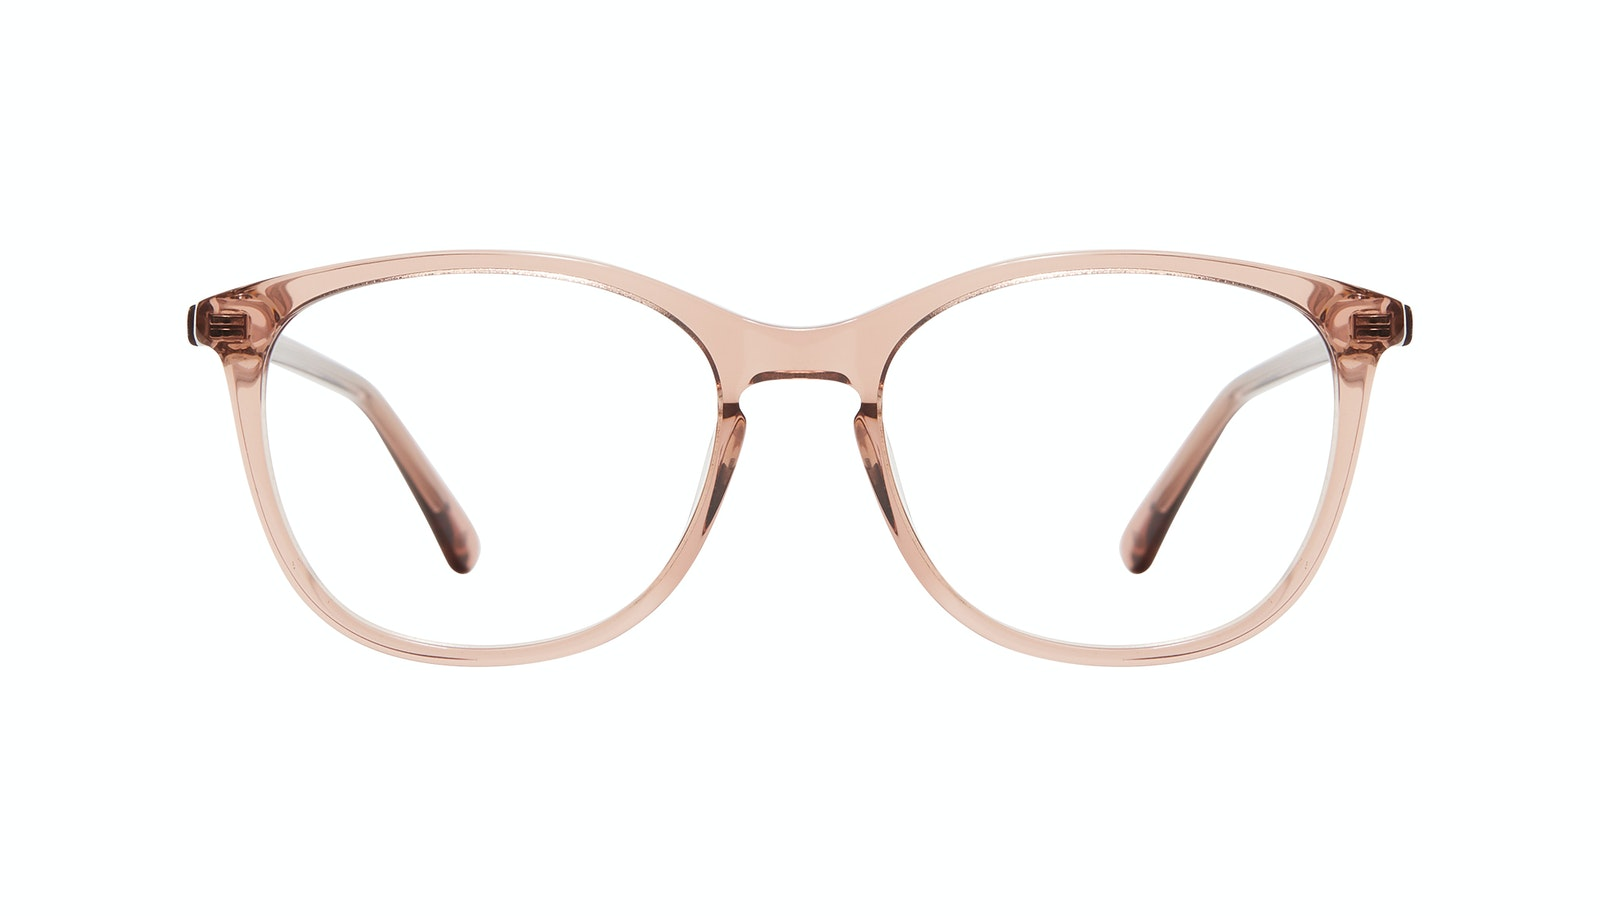 Affordable Fashion Glasses Rectangle Square Round Eyeglasses Women Nadine M Rose